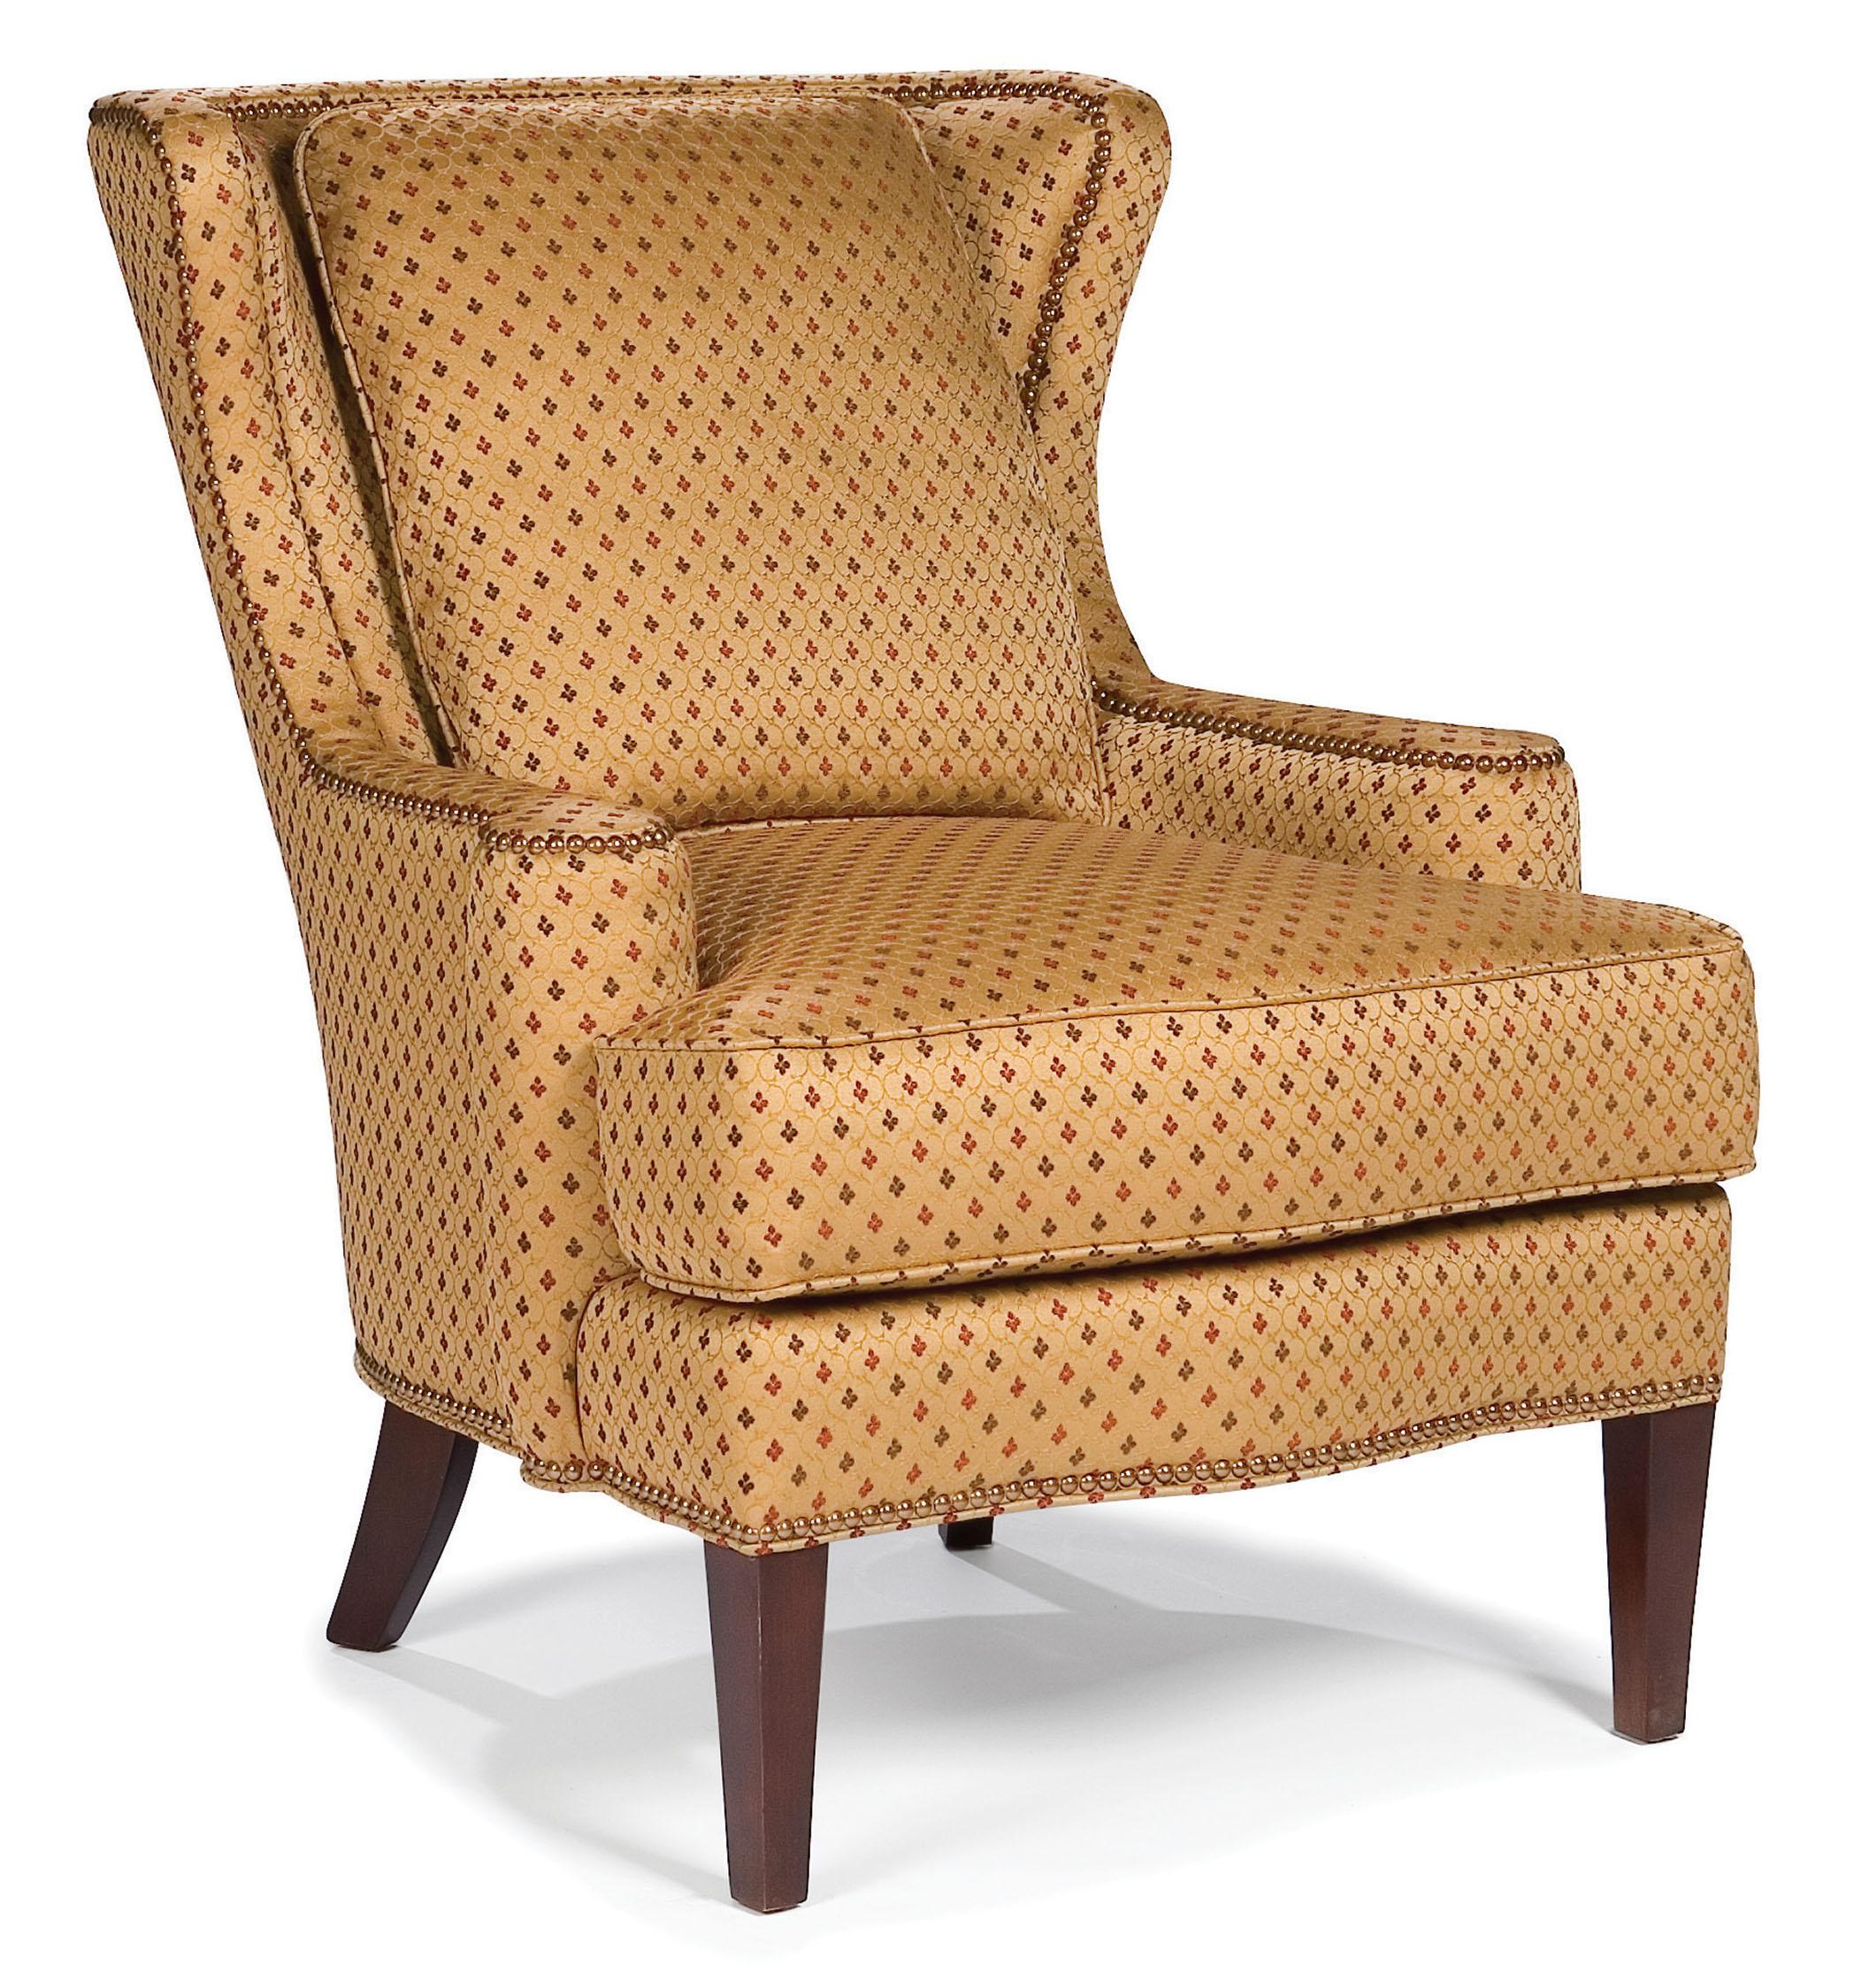 Fairfield Chairs Upholstered Wing Chair - Item Number: 5209-01